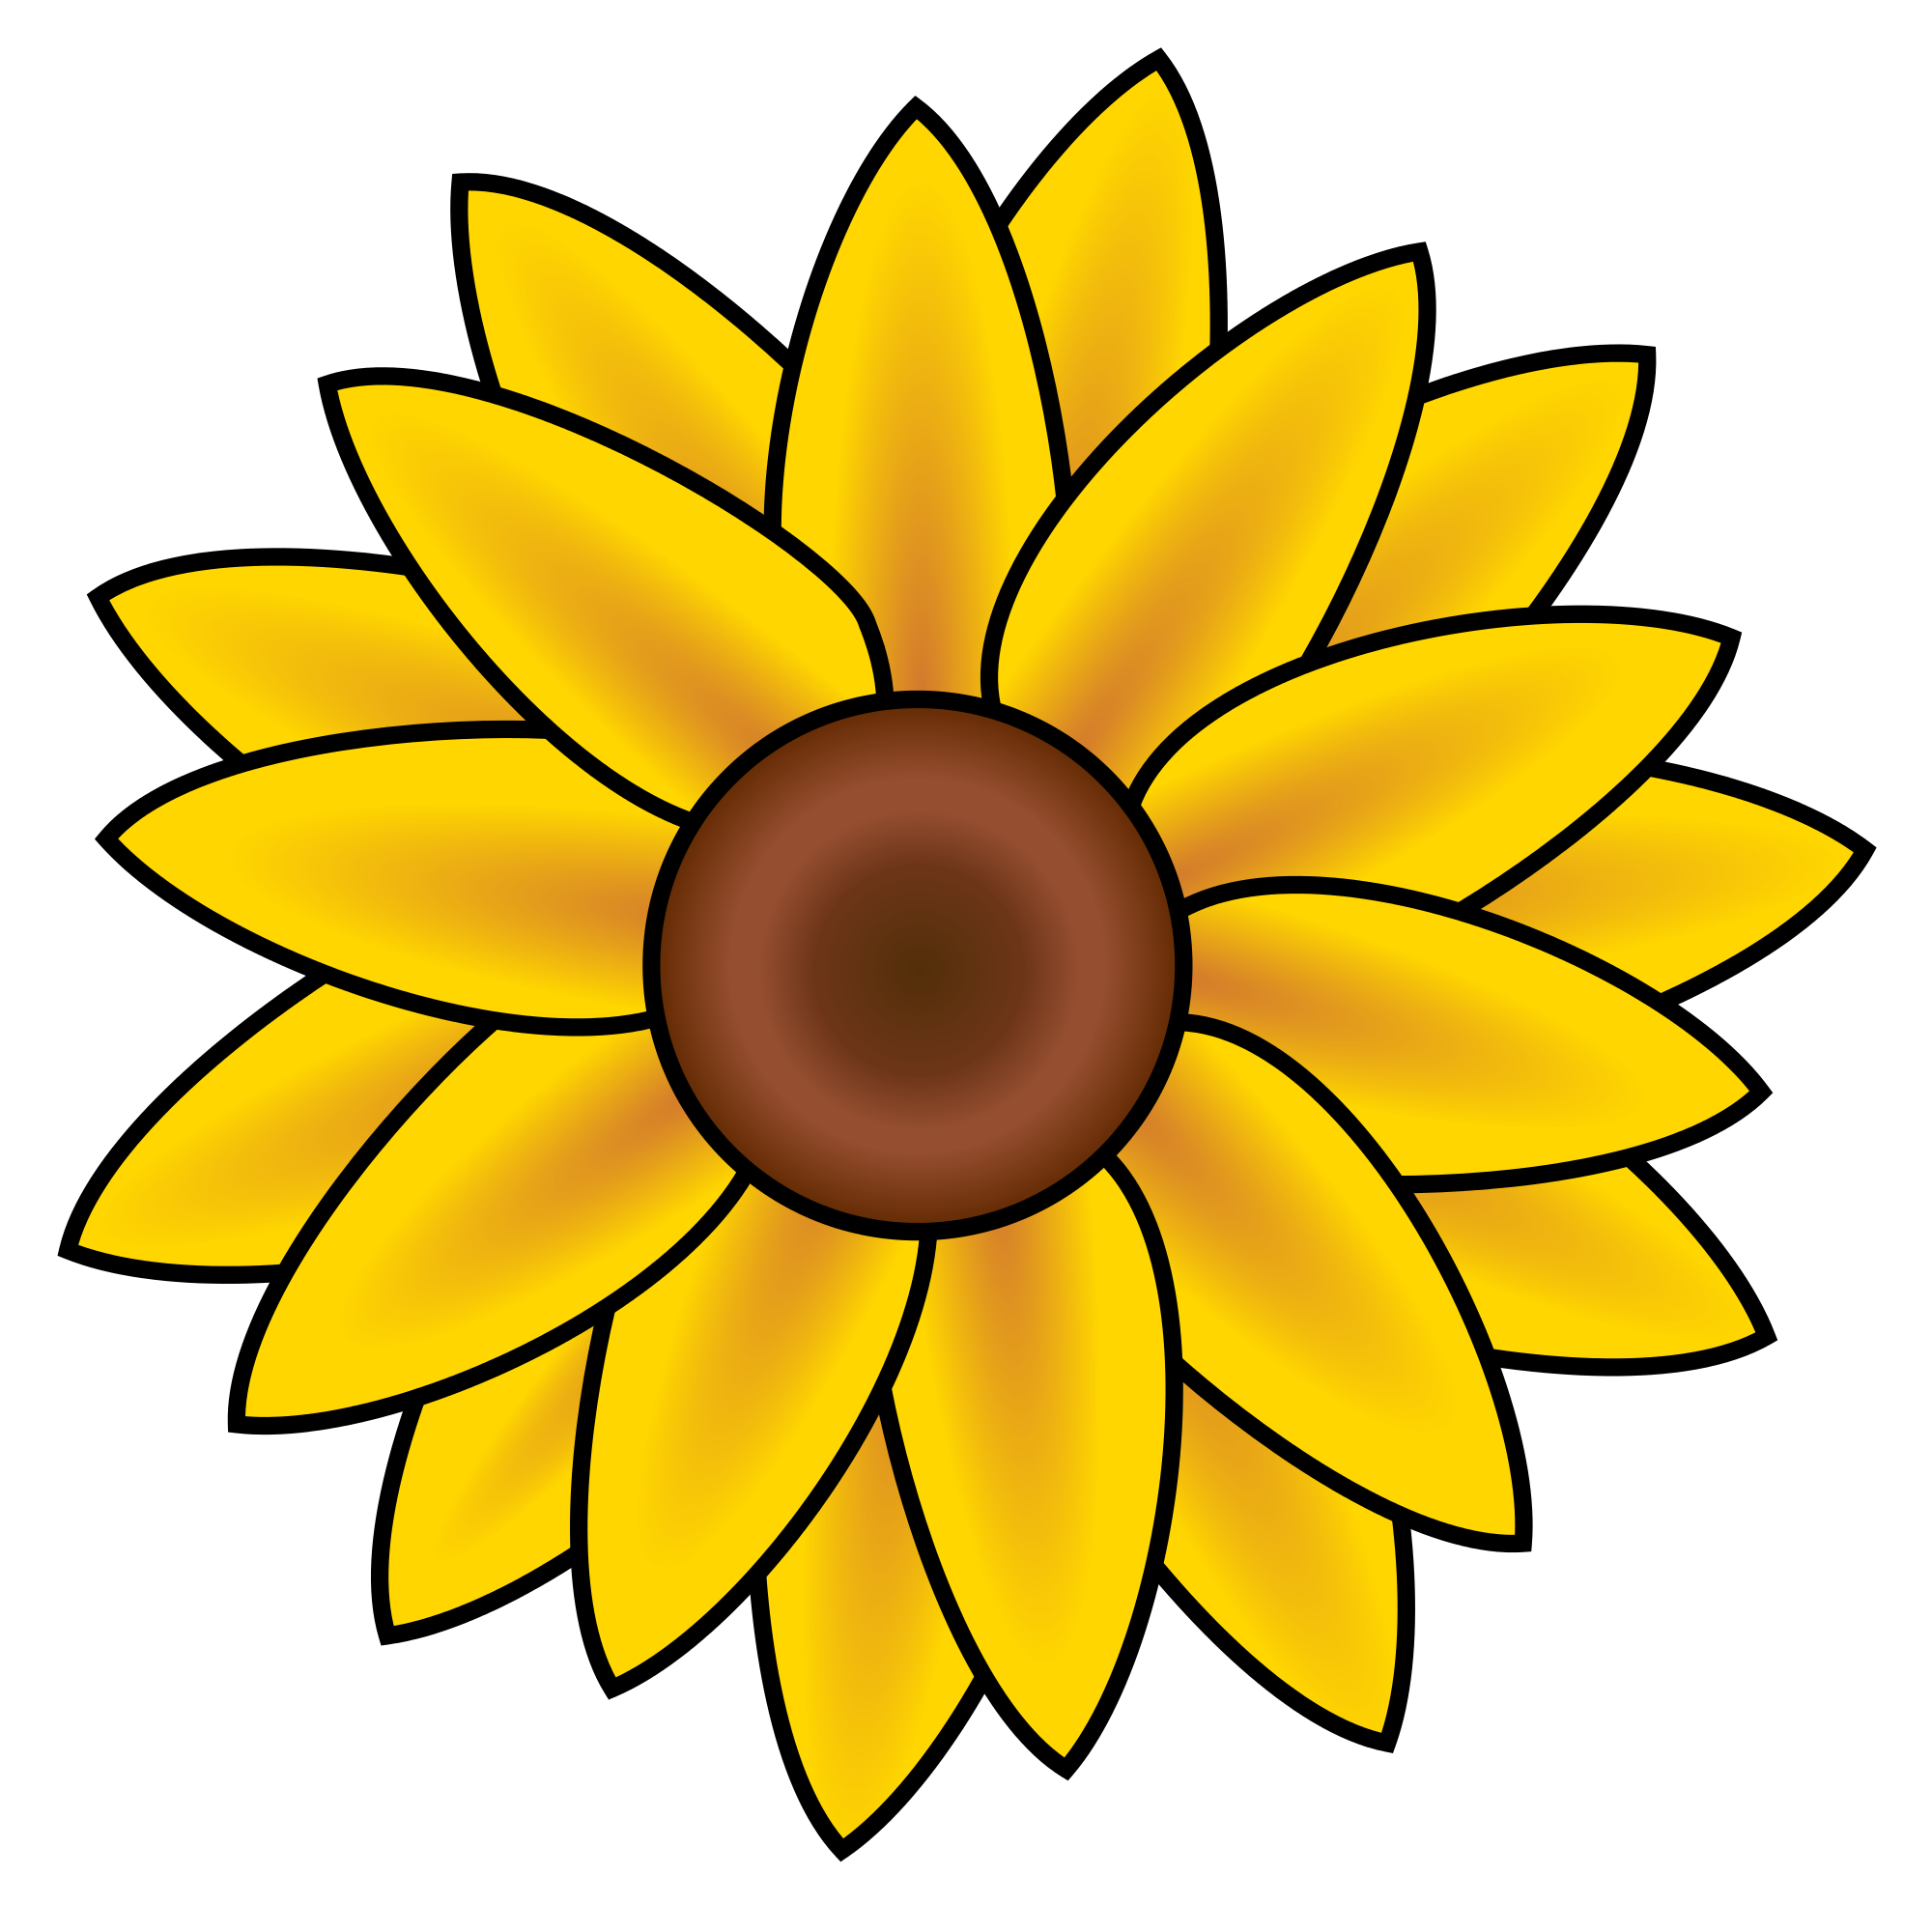 2000x2000 Filesunflower Clip Art.svg